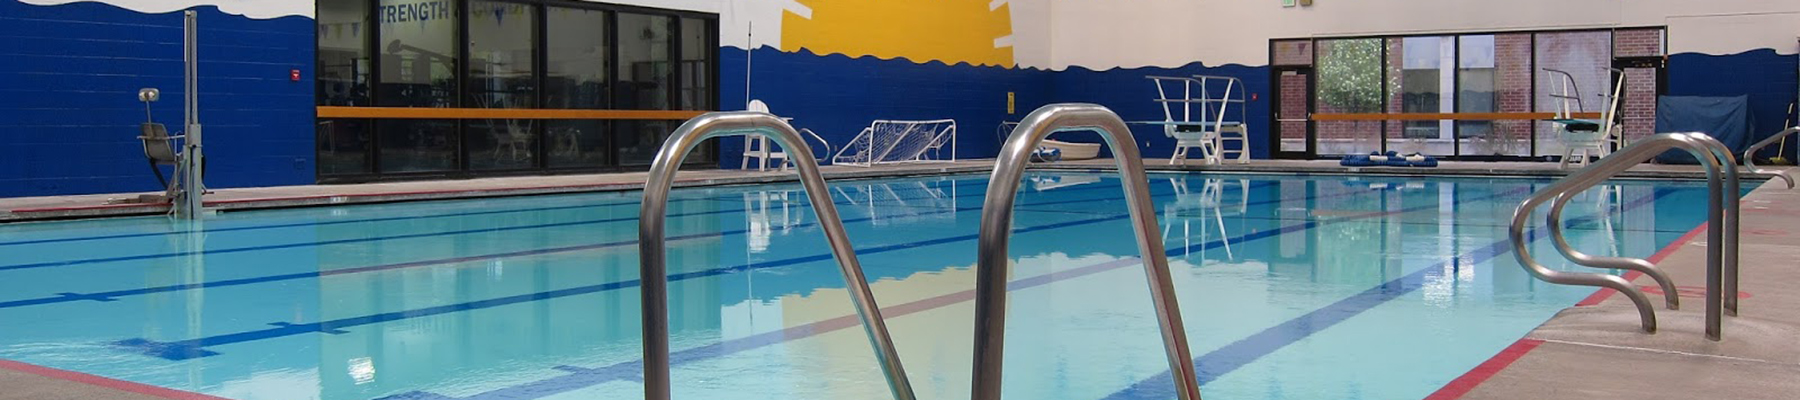 SCC Swimming Pool With Lanes